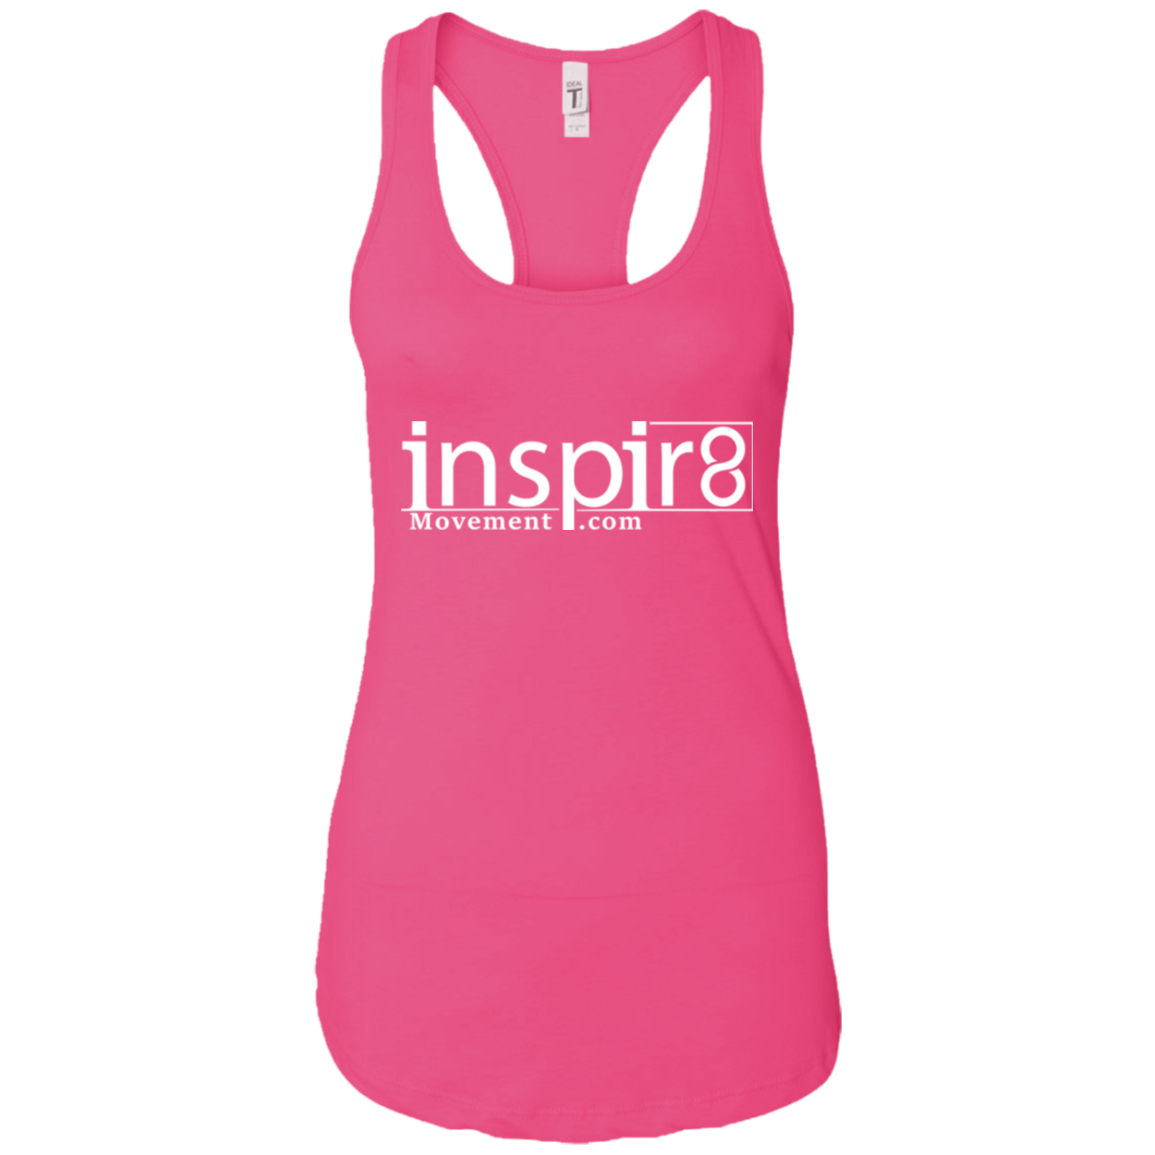 Official inspir8movement.com Women's Tank Top for inspirational clothing